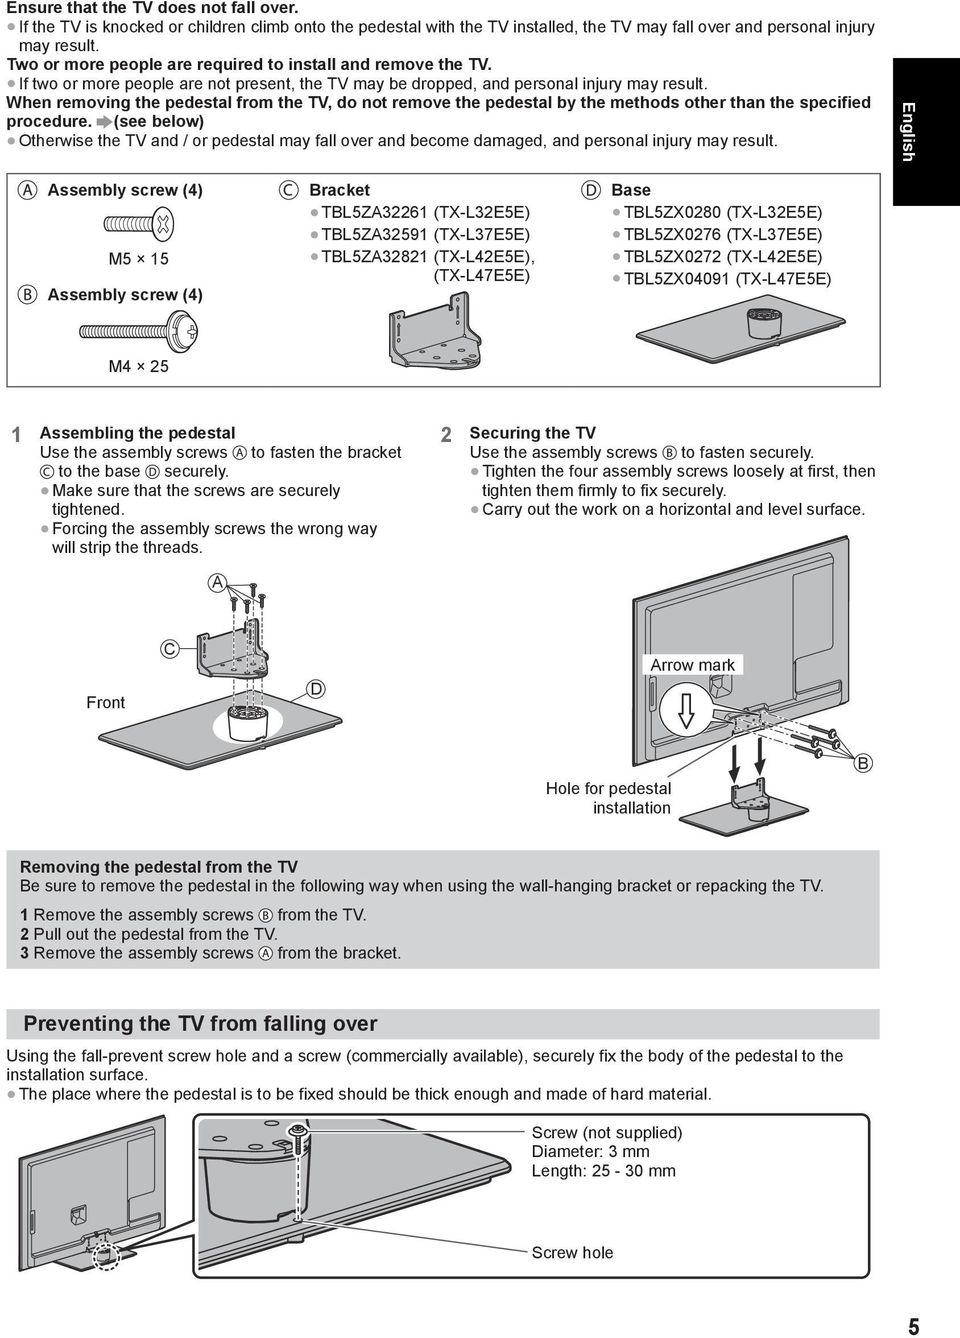 When removing the pedestal from the TV, do not remove the pedestal by the methods other than the specified procedure.